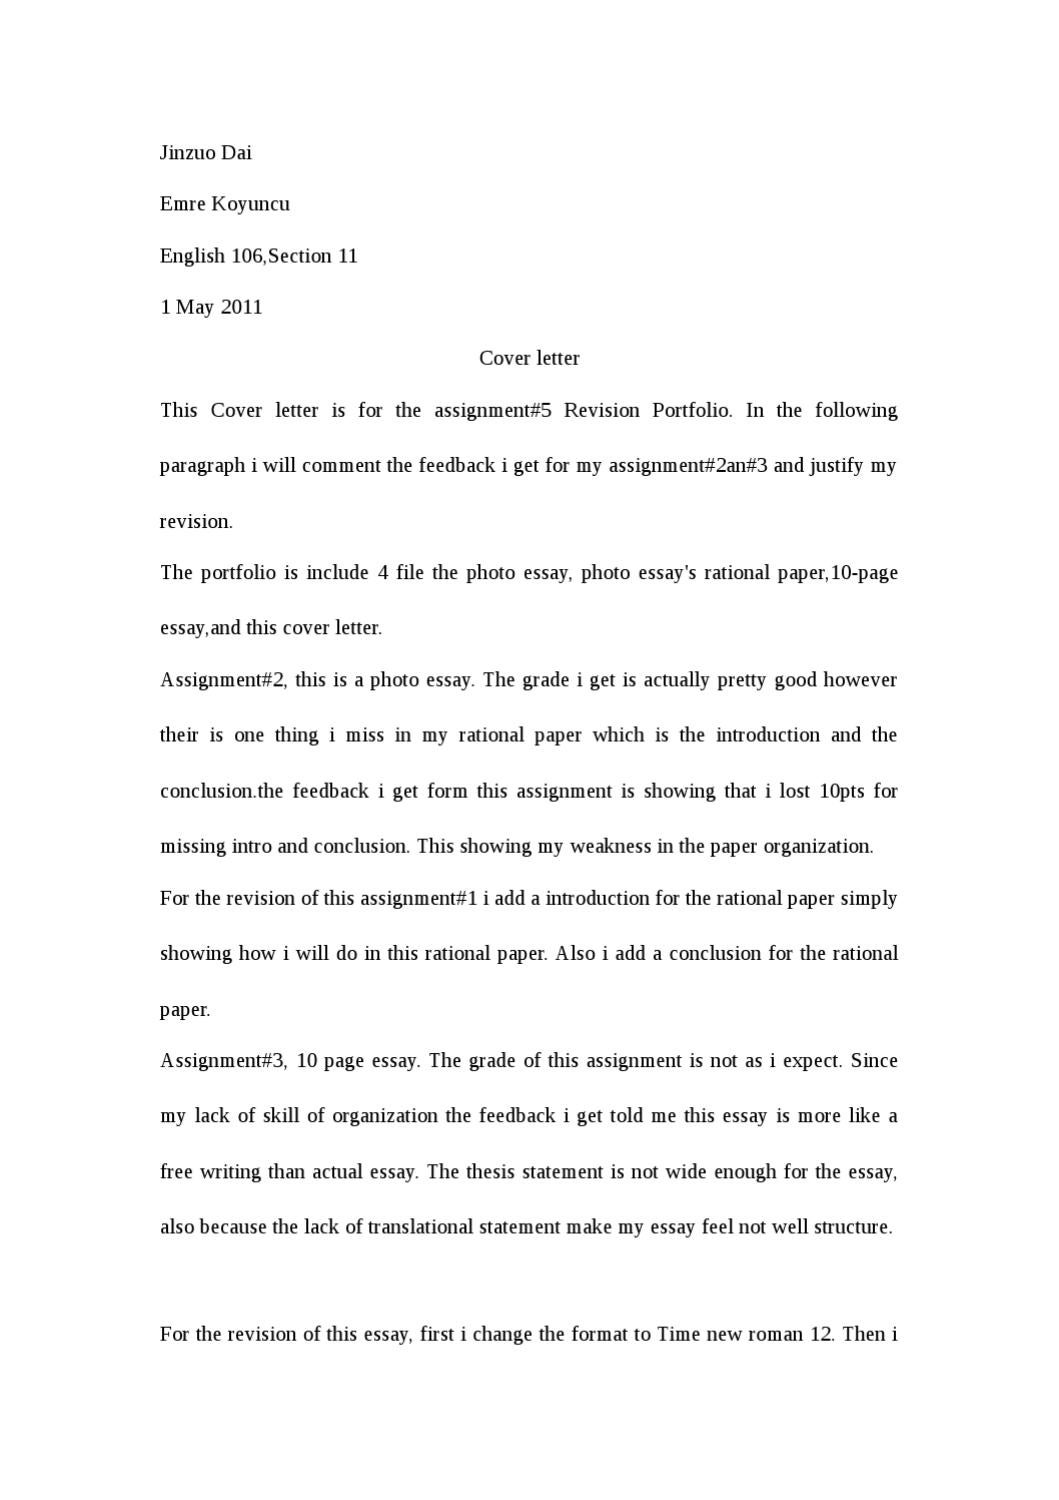 cover letter by jinzuo dai